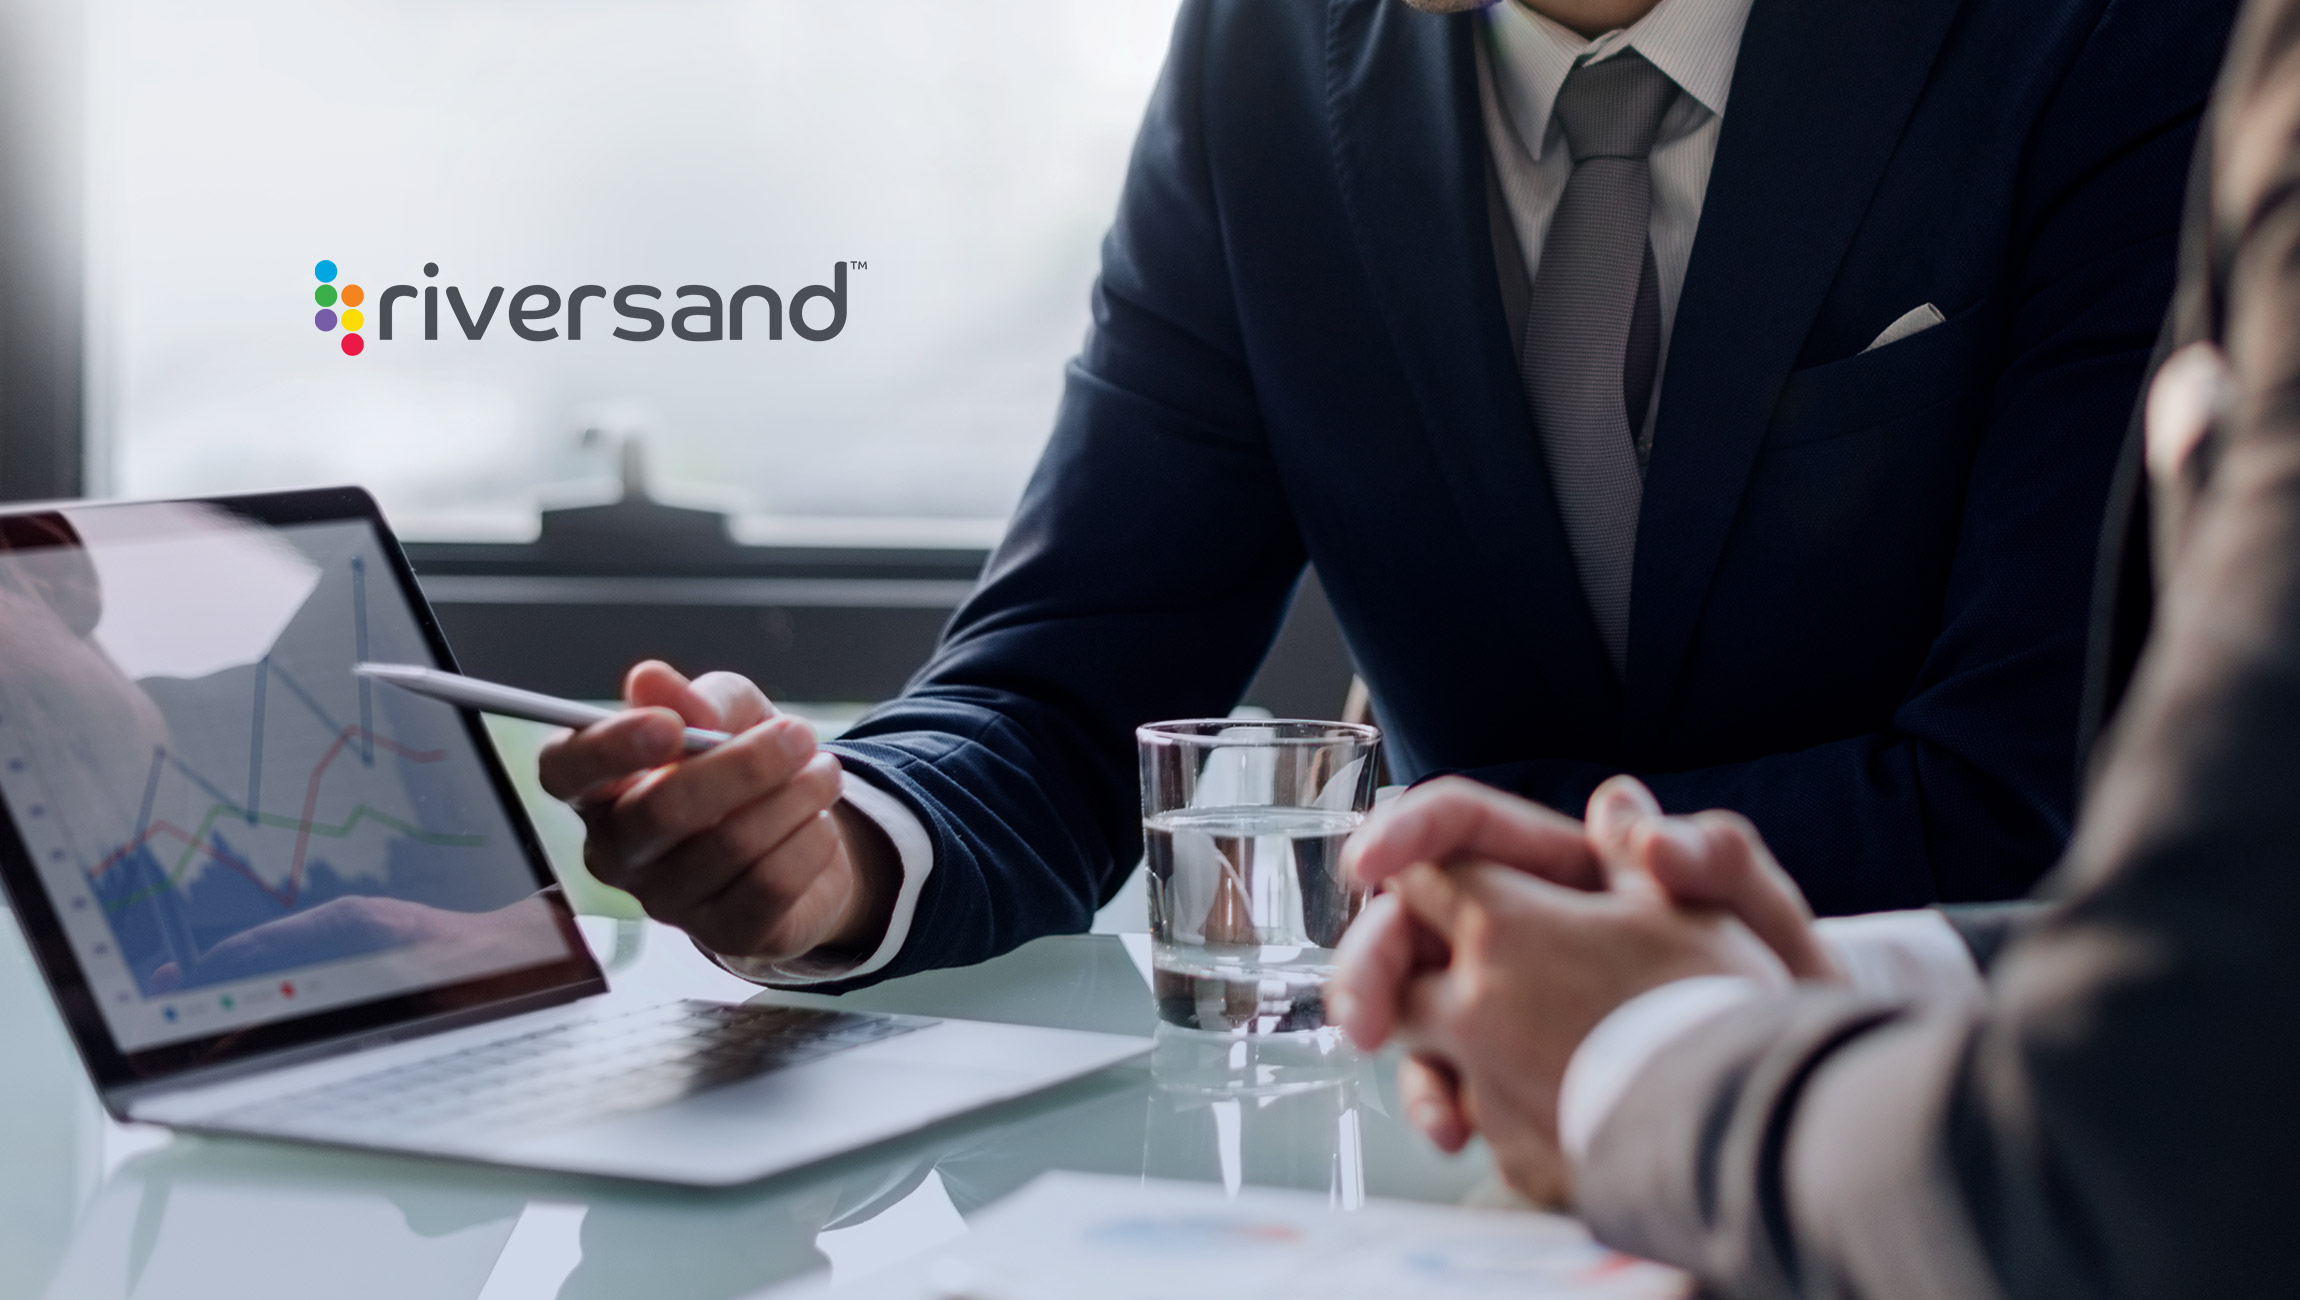 Riversand Technologies Appoints New EVP to Lead Growth in Europe and Middle East